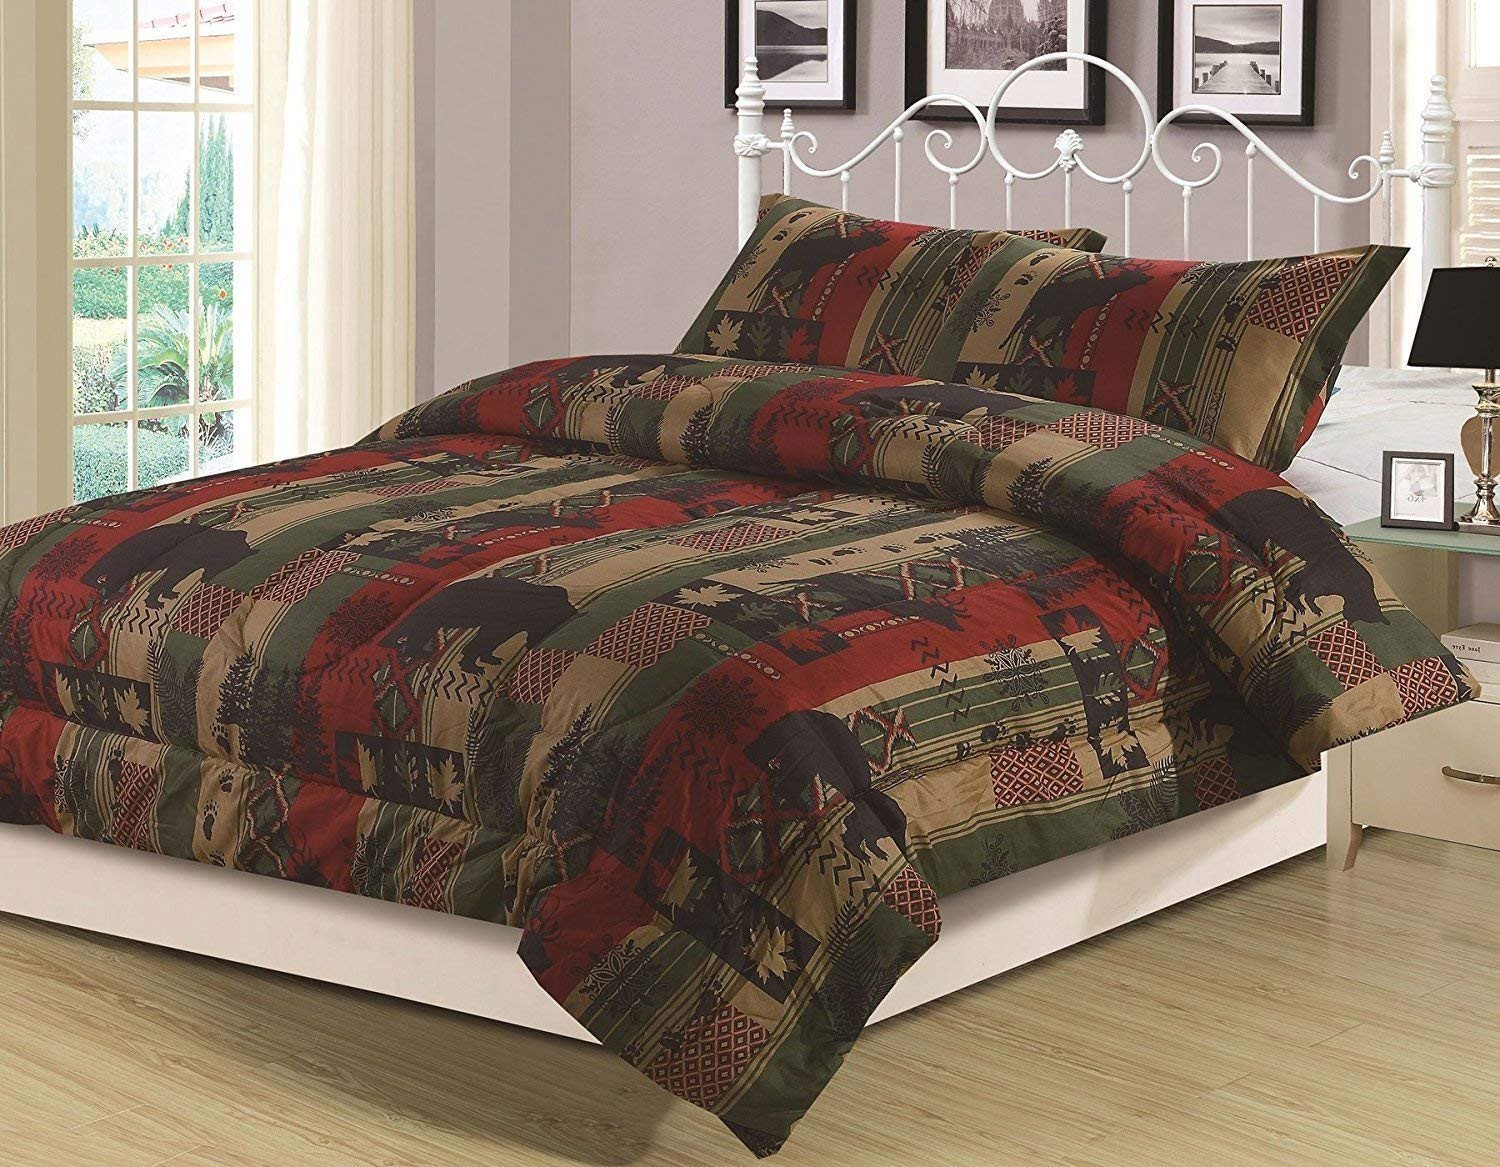 King Bedroom Comforter Set Unique Howplumb Rustic southwest Twin forter 2 Piece Bedding Set Bear Cabin Lodge Nature Wildlife